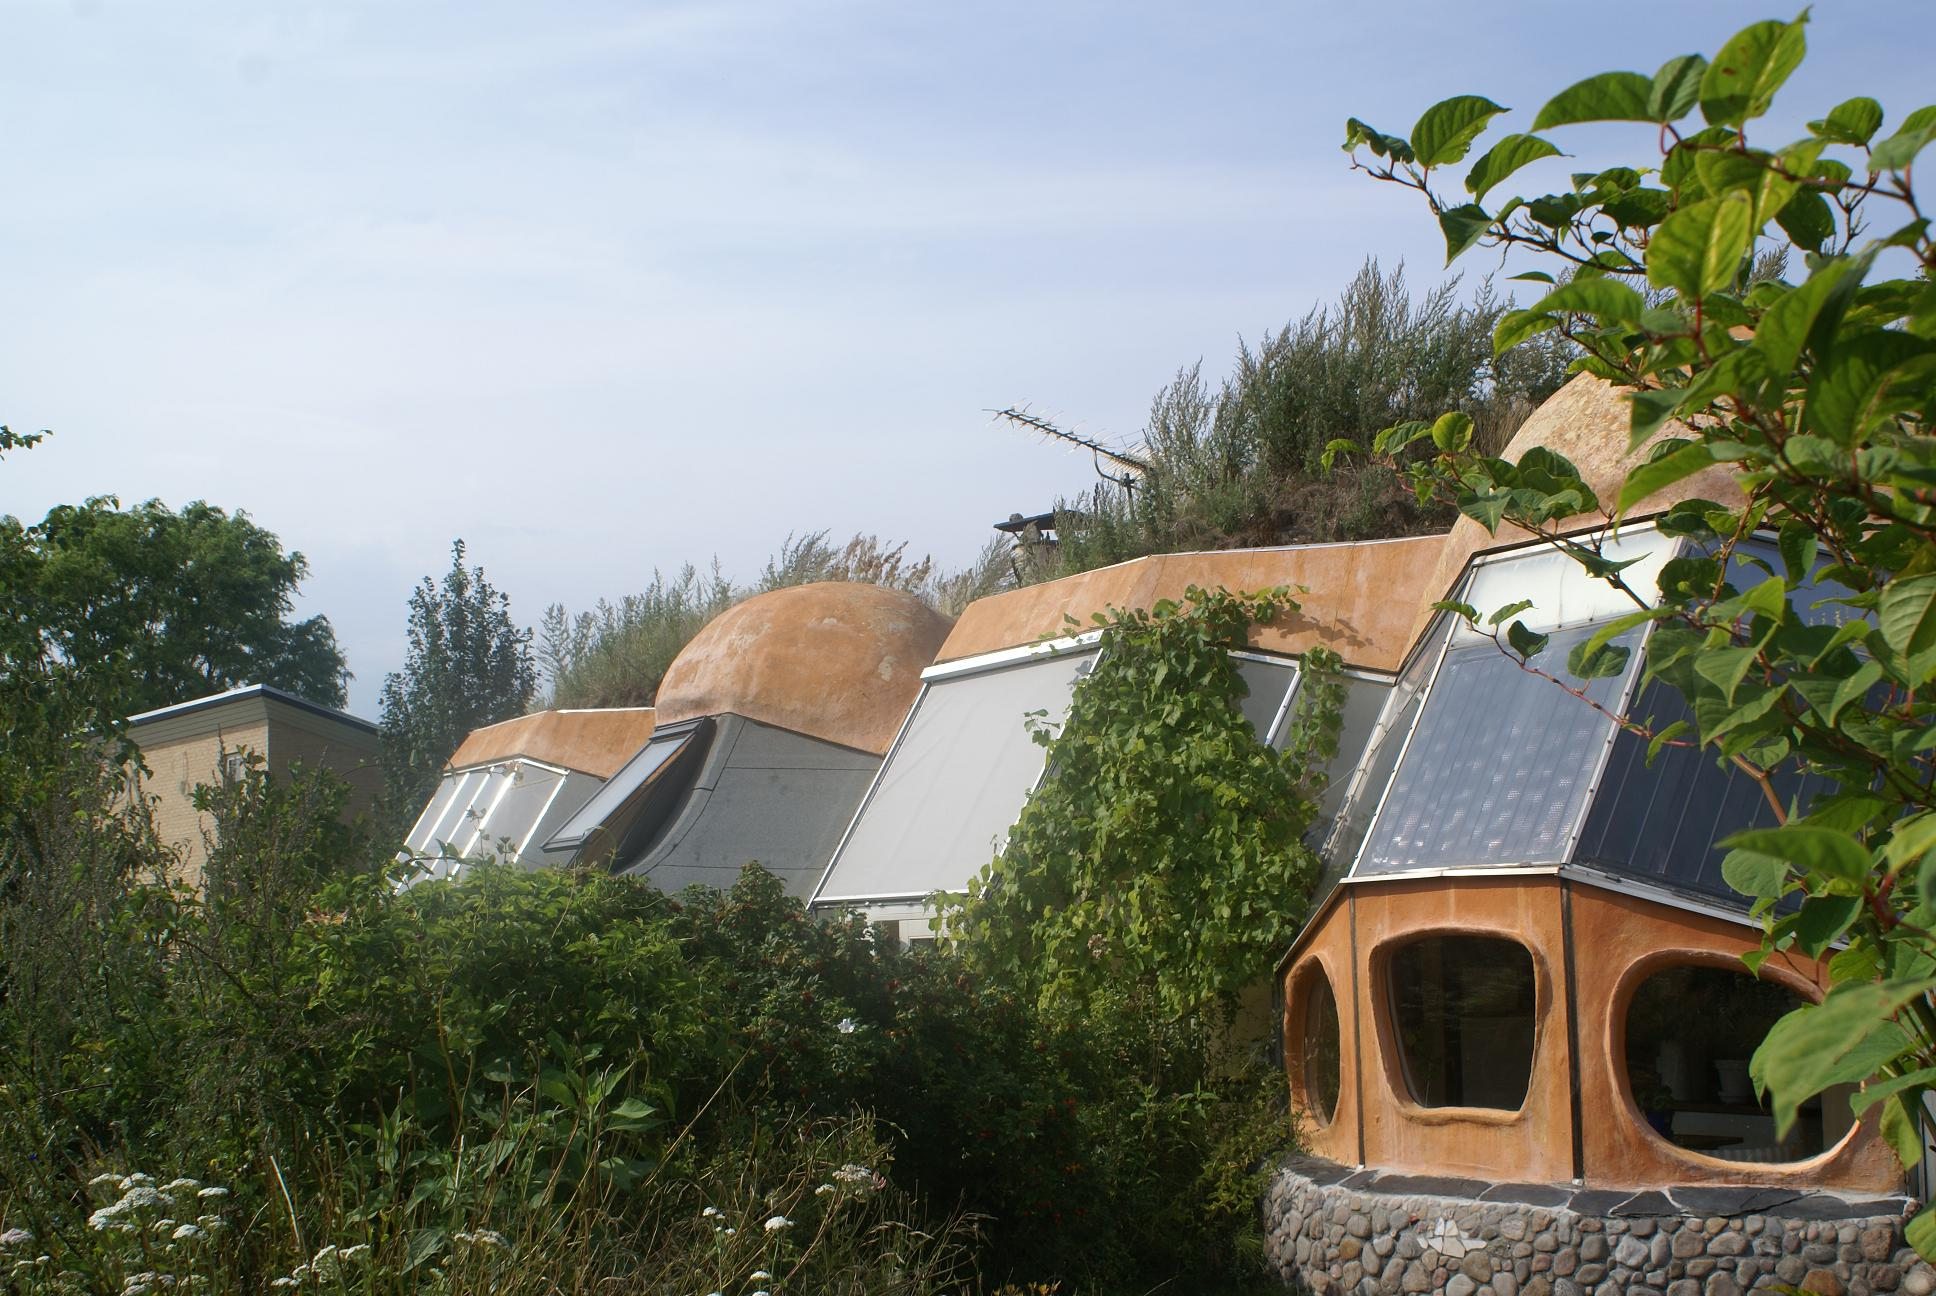 The Eco-village: Innovative Ways of Dealing with the Environment